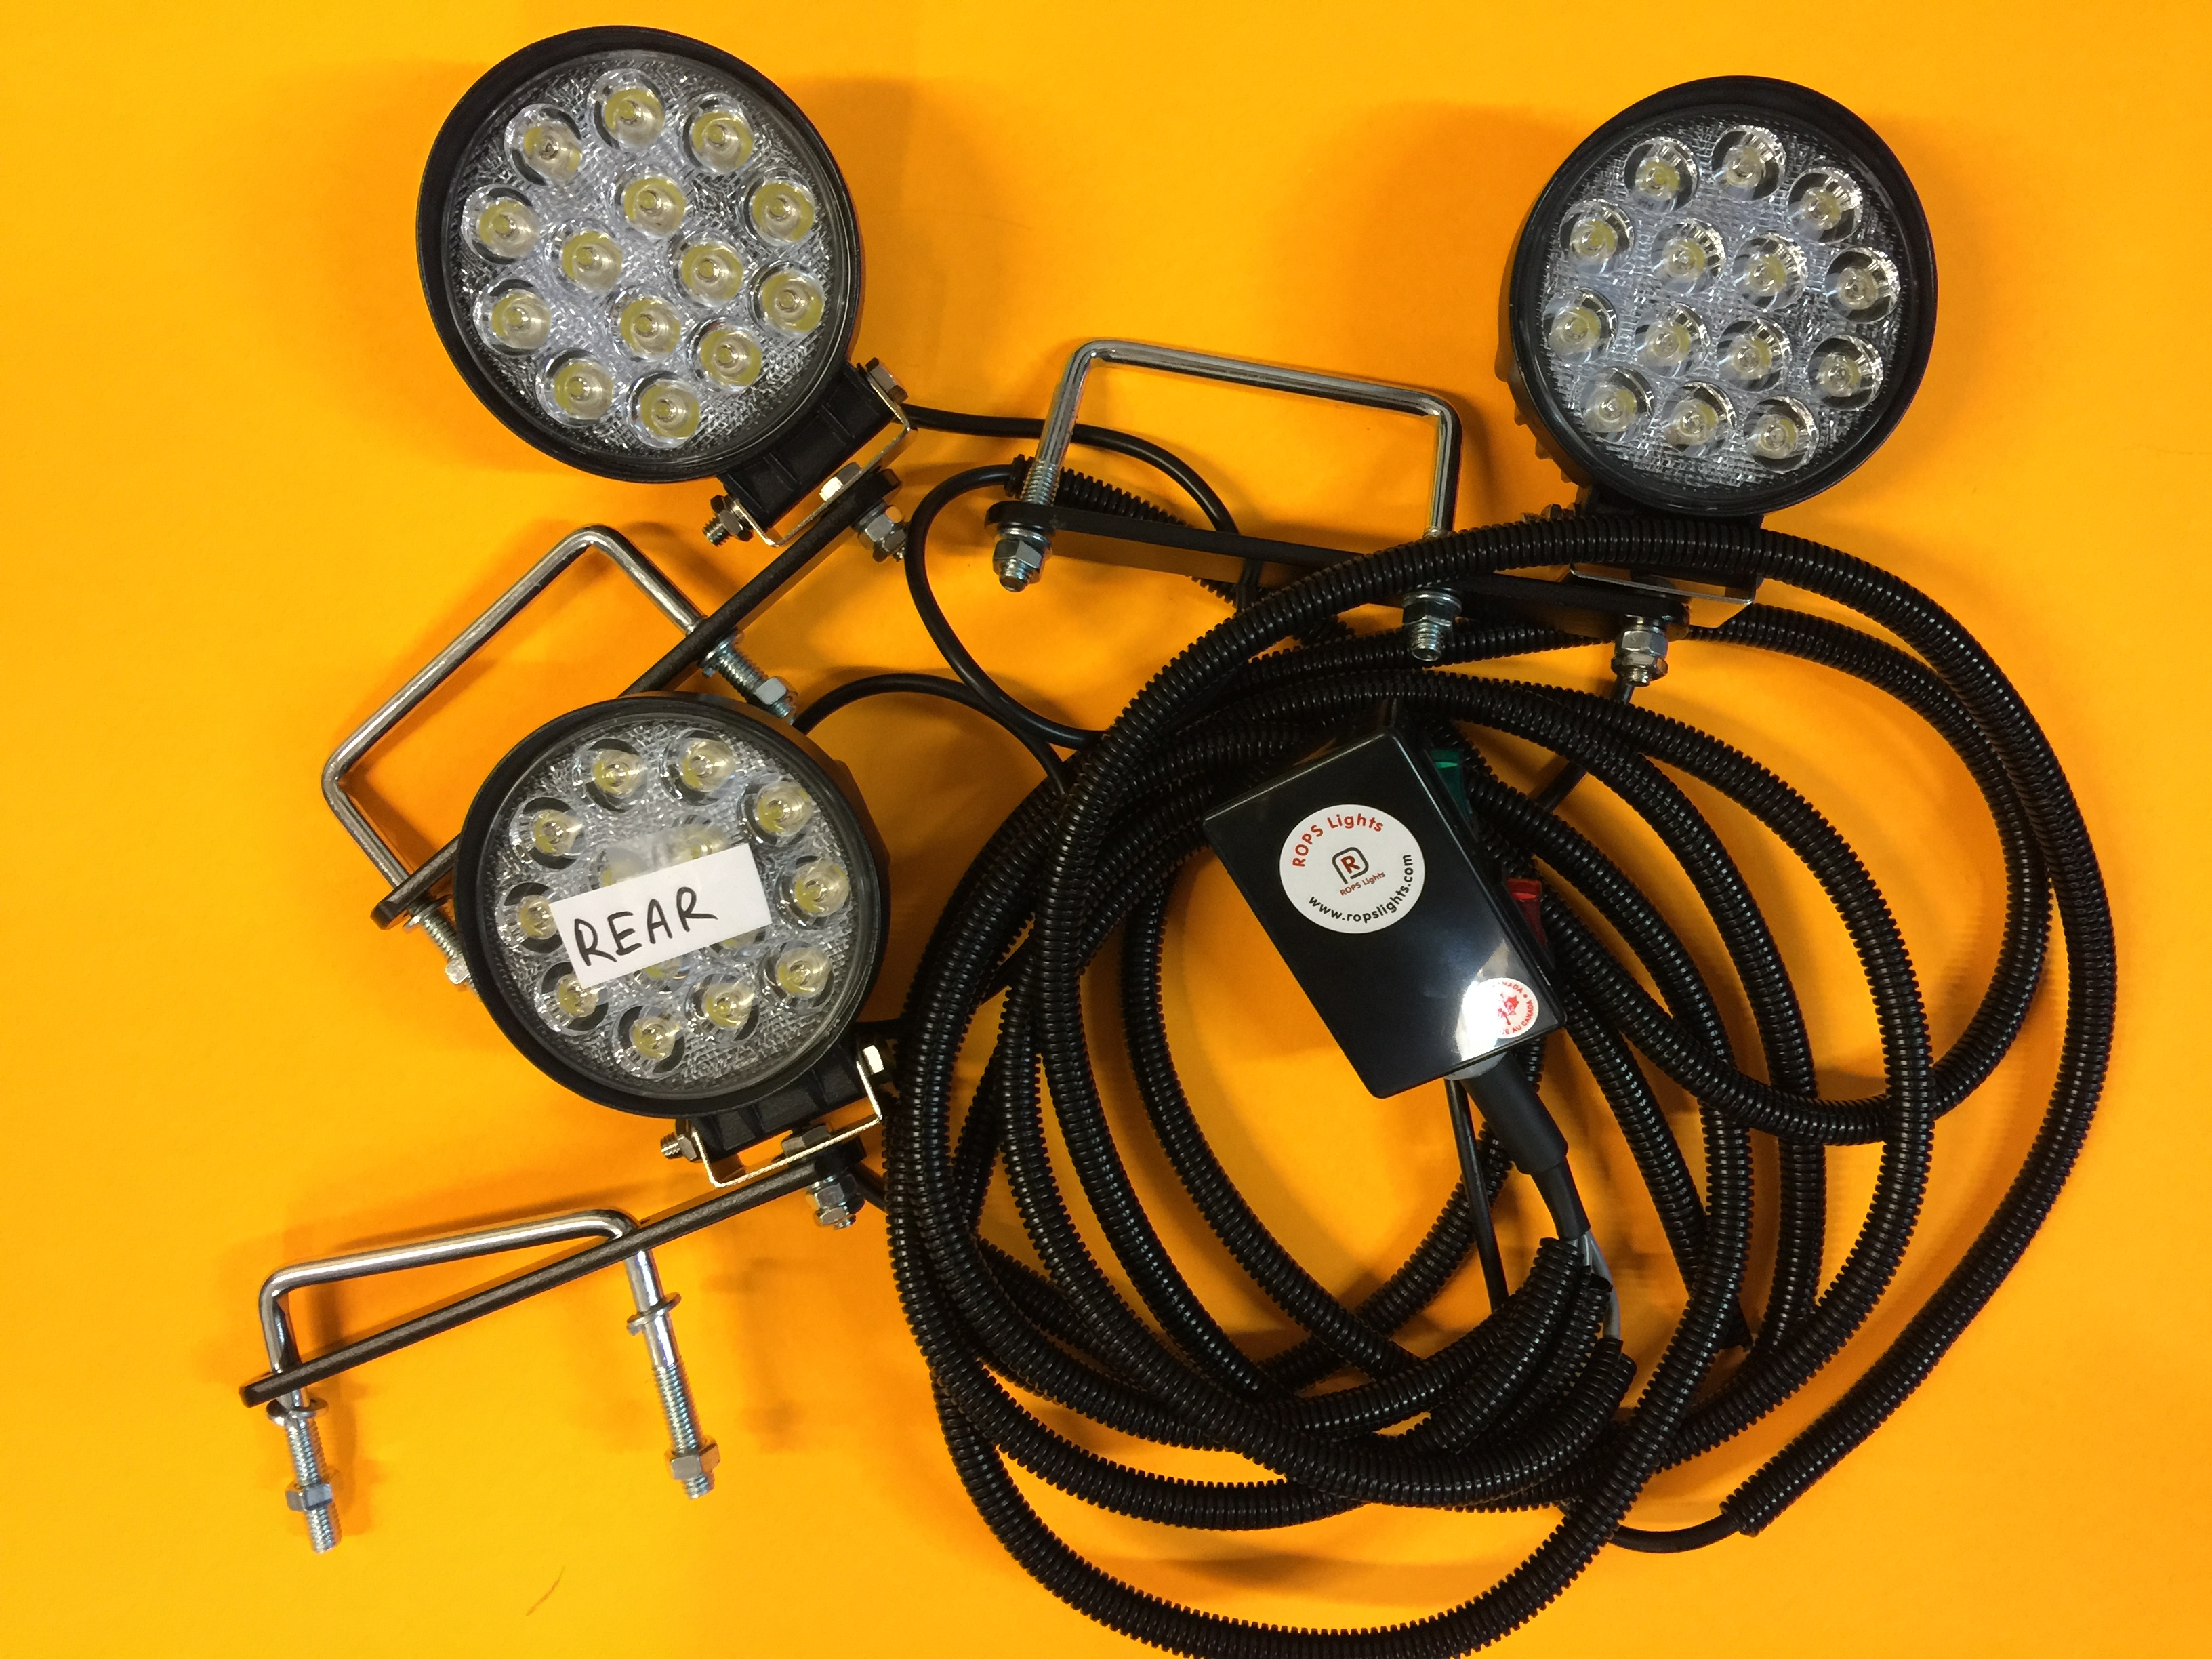 Kubota L Series Rops Lights Led Worklight Kits Wiring Up Work